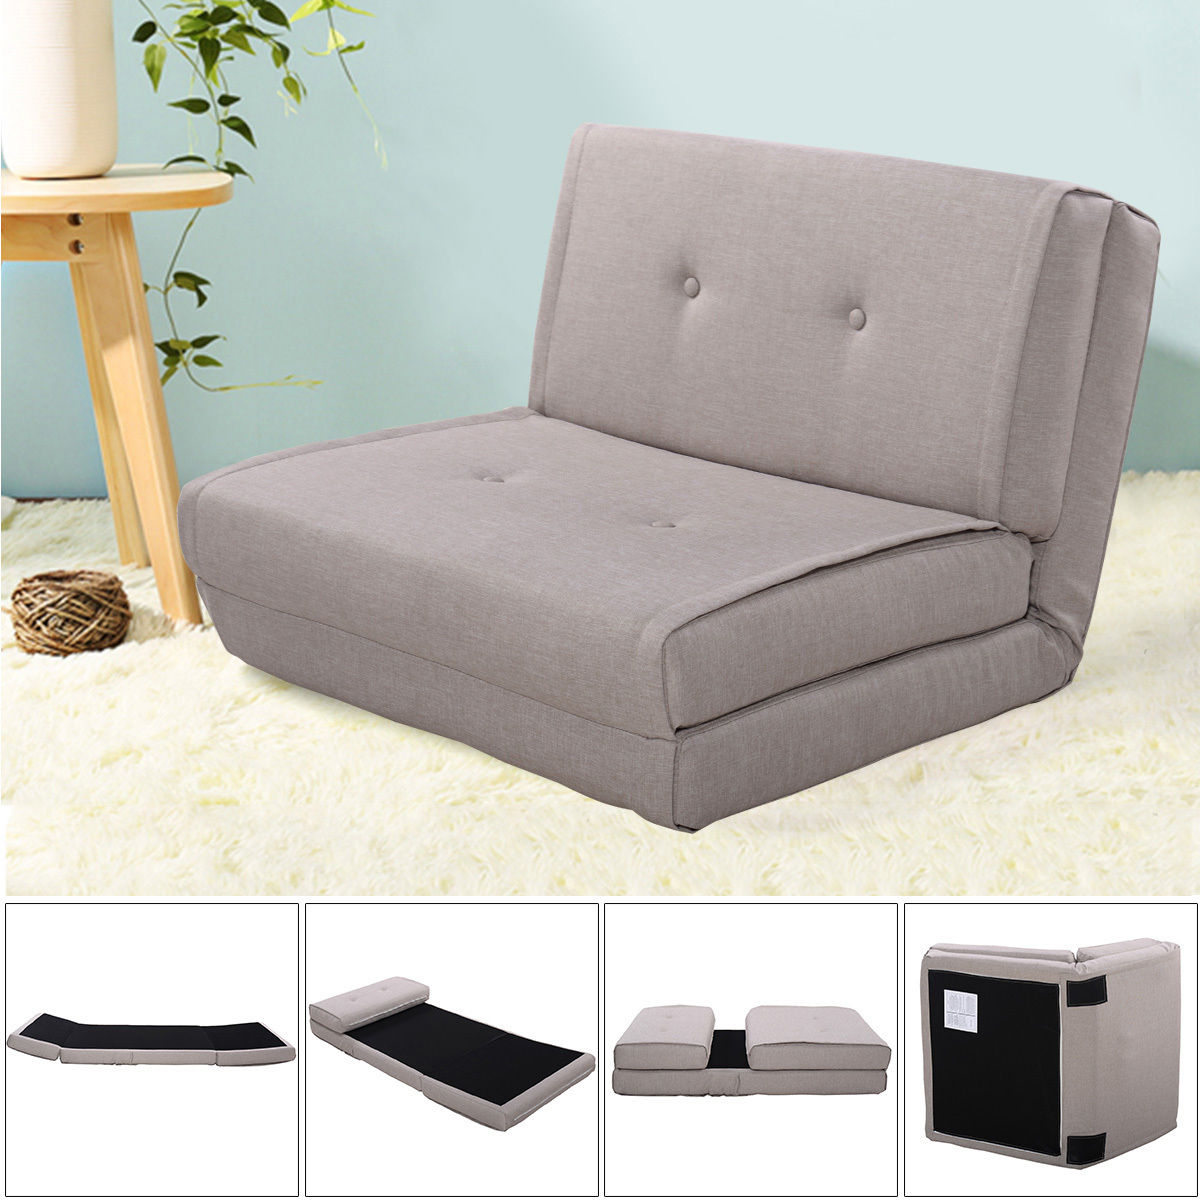 Giantex fold down sofa bed living room flip out lounger for Flip down sofa bed